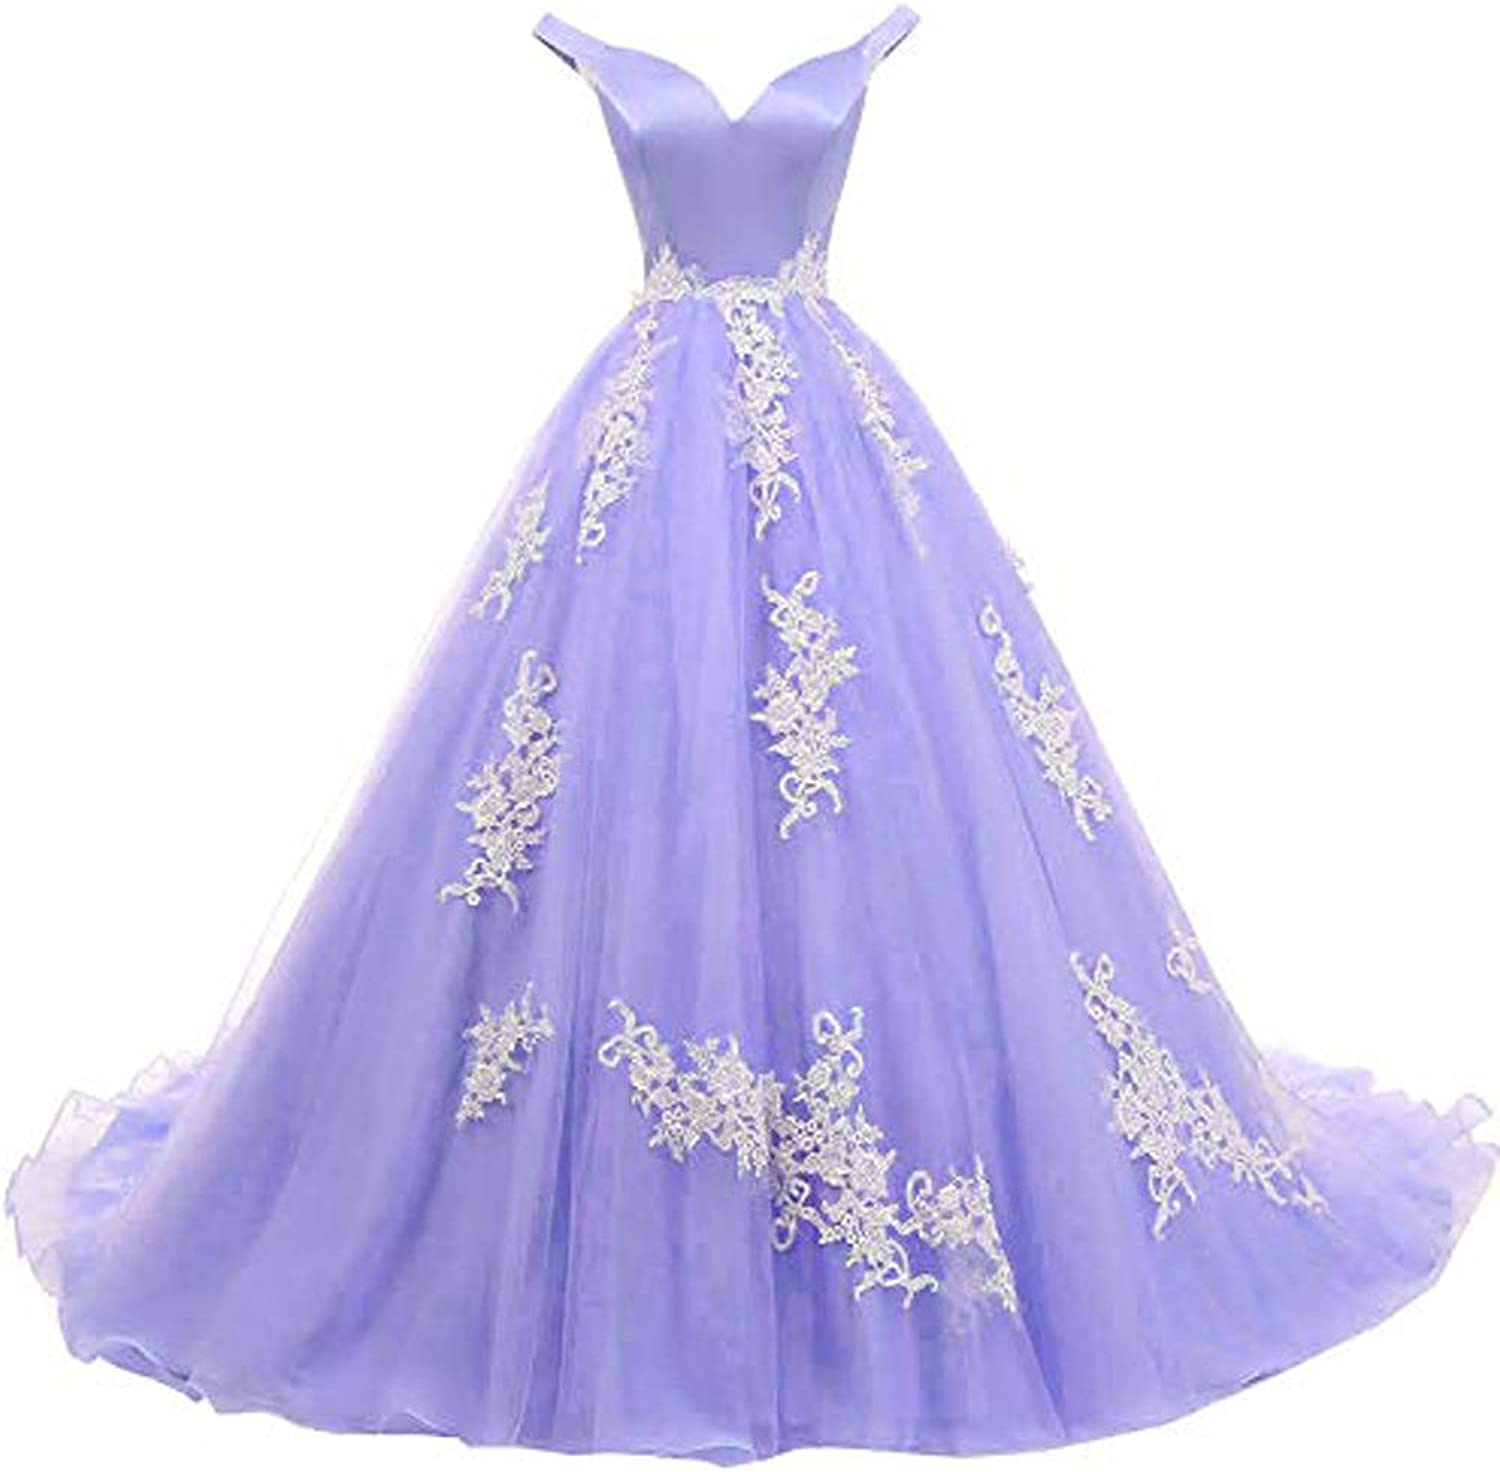 MariRobe Women's lace Applique Quinceanera Dresses 2019 Off The Shoulder Prom Dress Backlesss Evening Dress Prom Gown